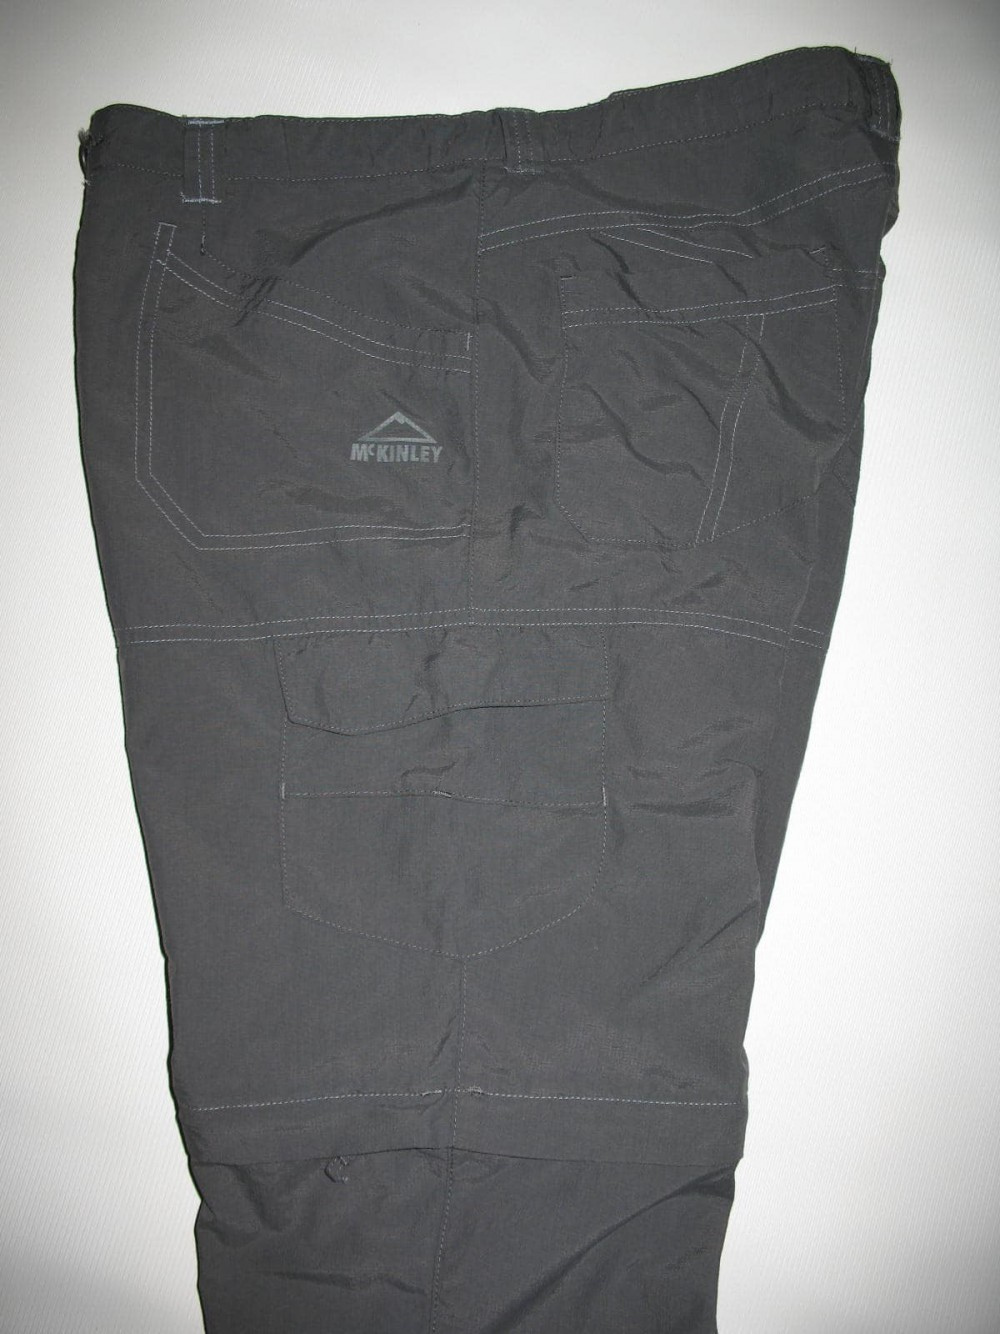 Штаны McKINLEY 2in1 pants lady (размер М) - 6